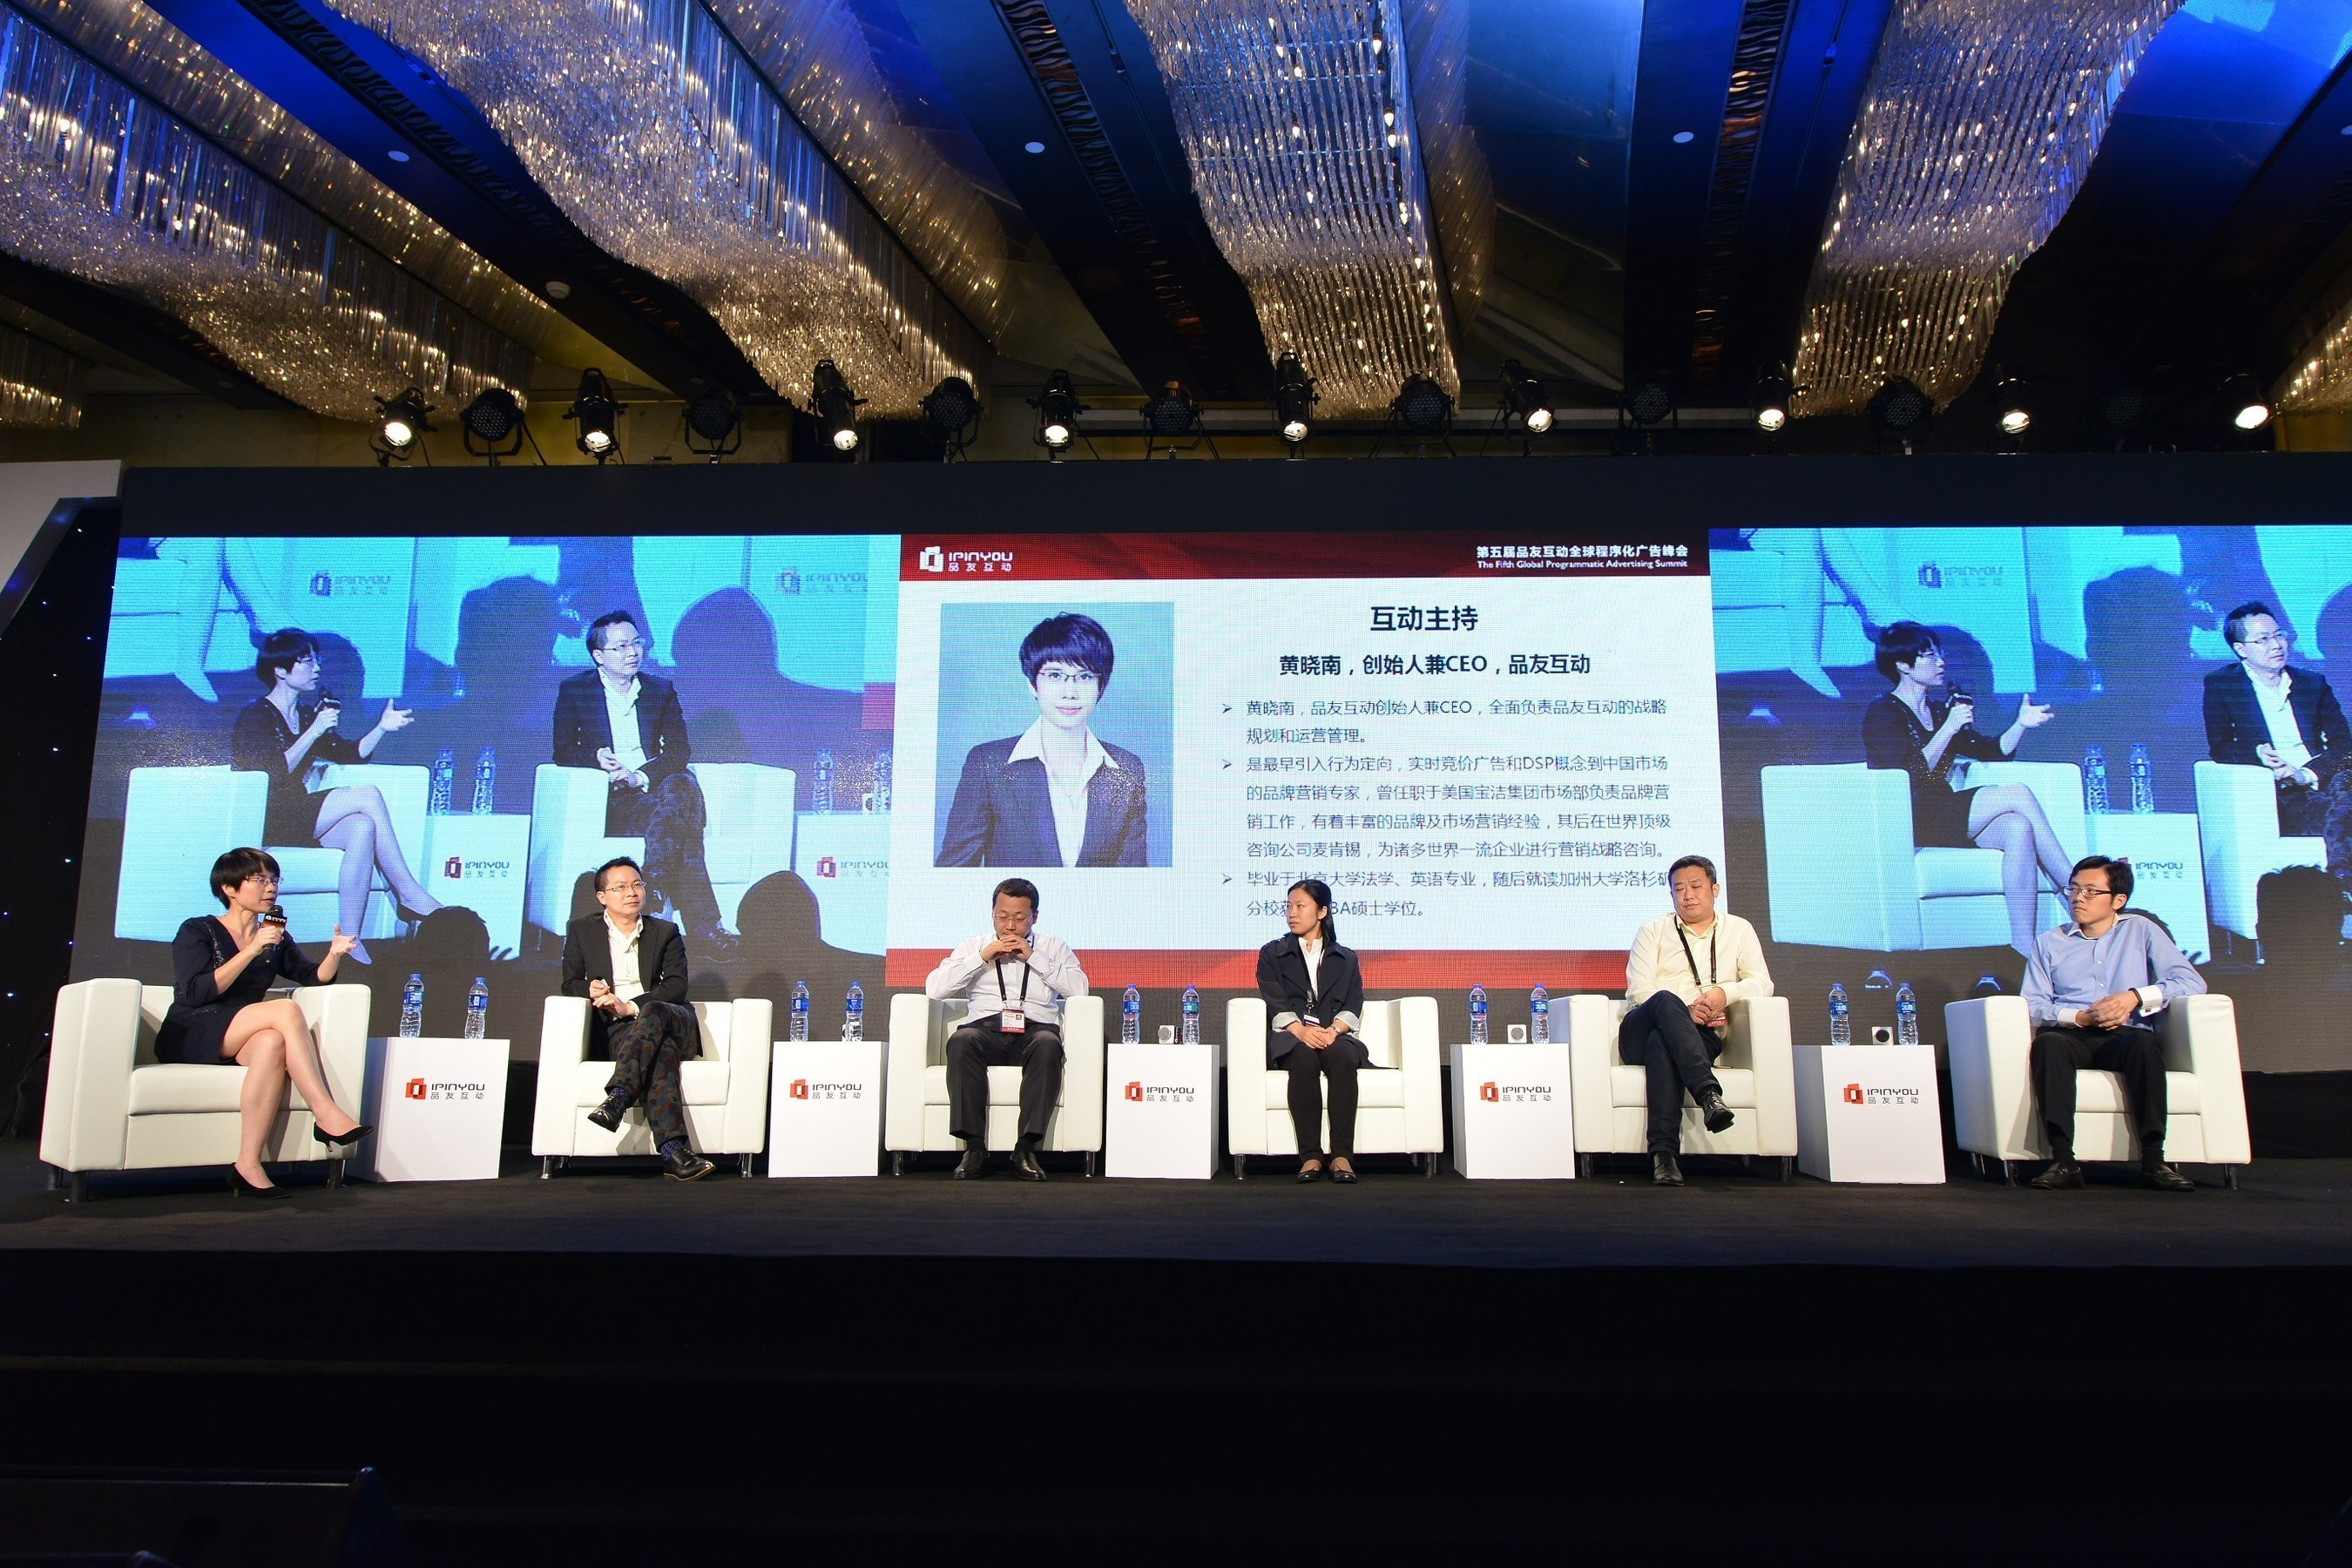 From left to right: Grace Huang (Founder & CEO of iPinYou), Guo Dongdong (VP of yhd.com), Song Zhaowei (GM of Marketing of Haier Group), Shen Qin (Director of Branding of LUFAX), Yao Xiangdong (GM of Marketing of HANAJIRUSH China), Lu Ting (Head of Branding Media and Big Data Projects of SGM)